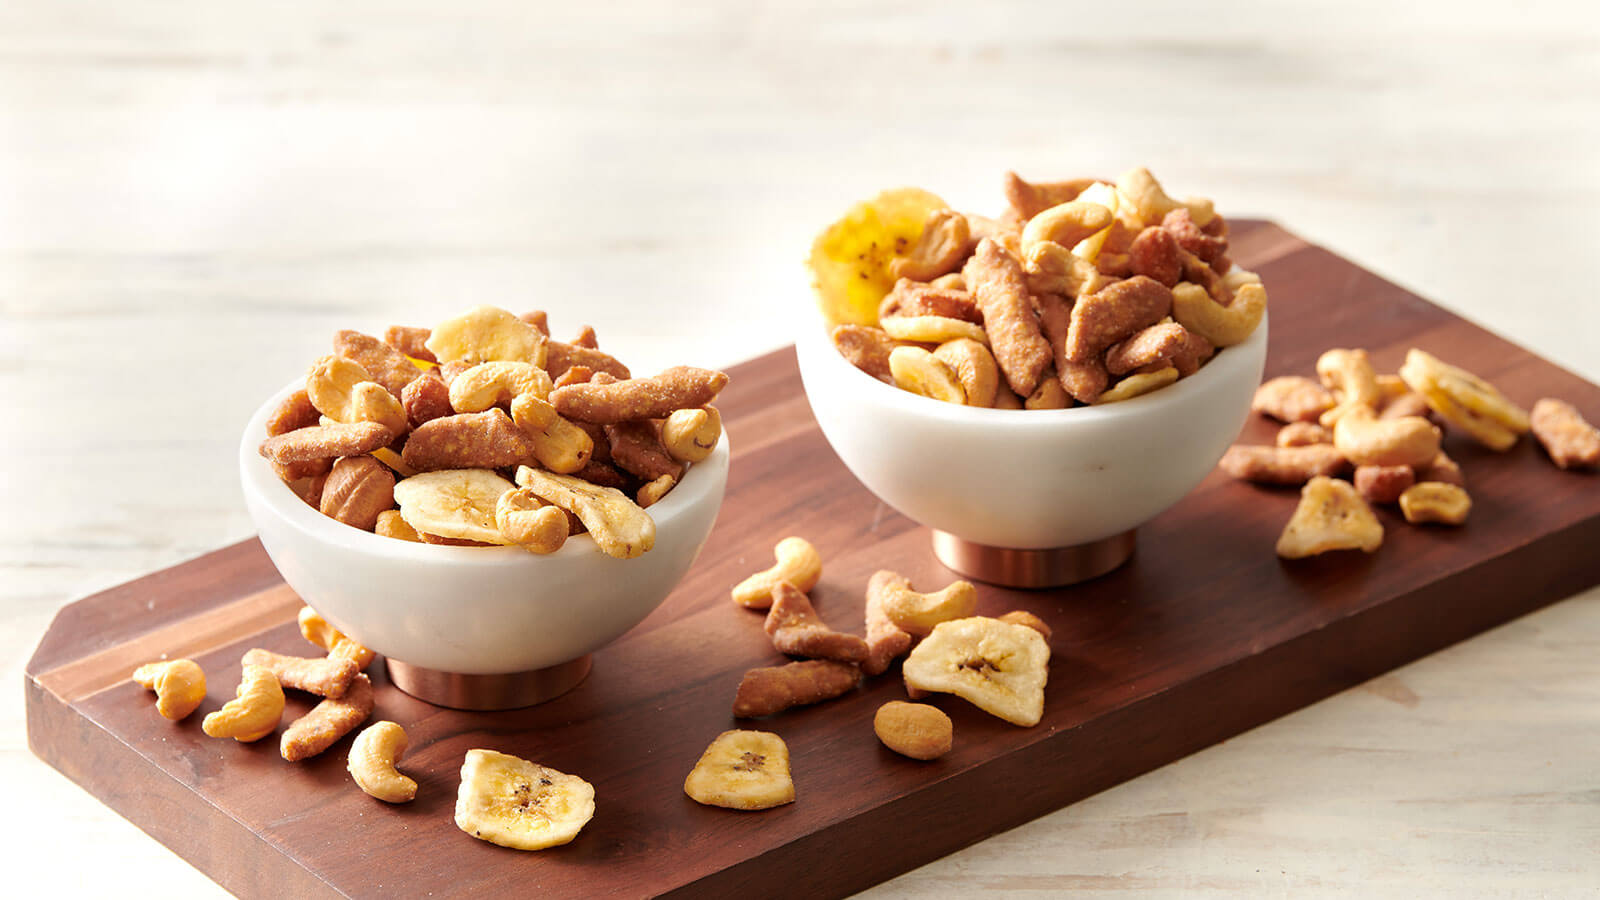 Seasonal Pineapple Habanero Snack Mix